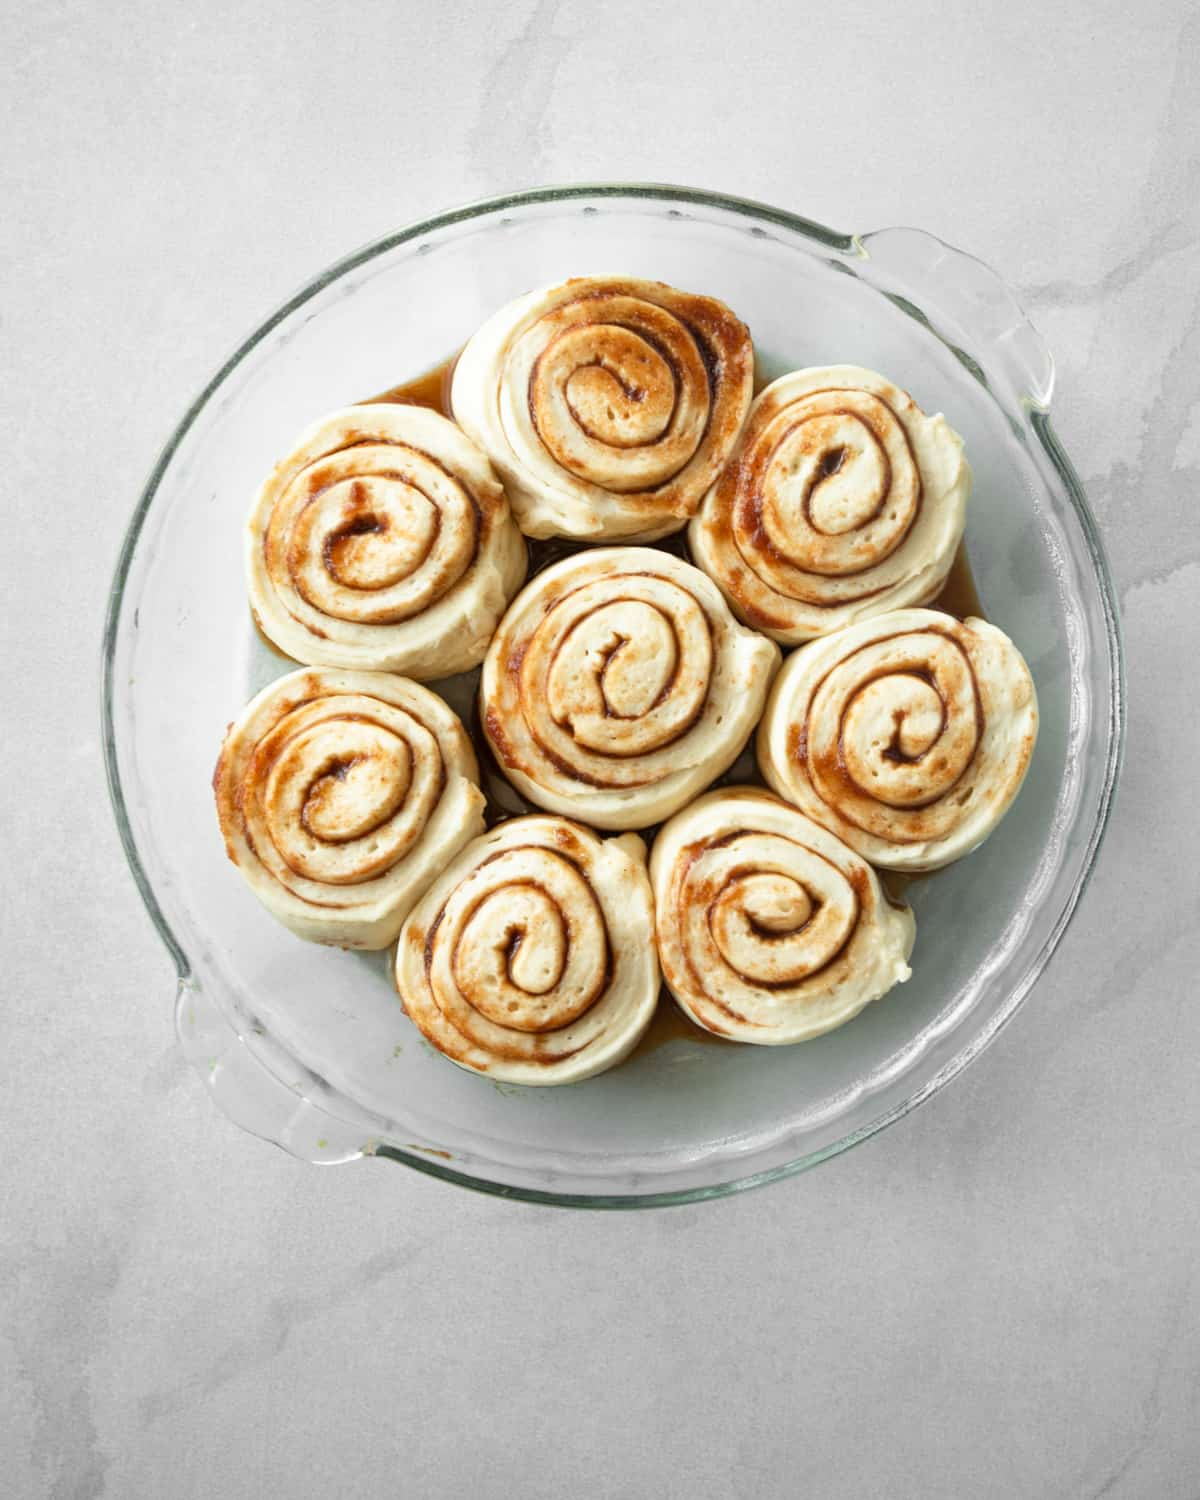 uncooked rolls in a clear baking dish